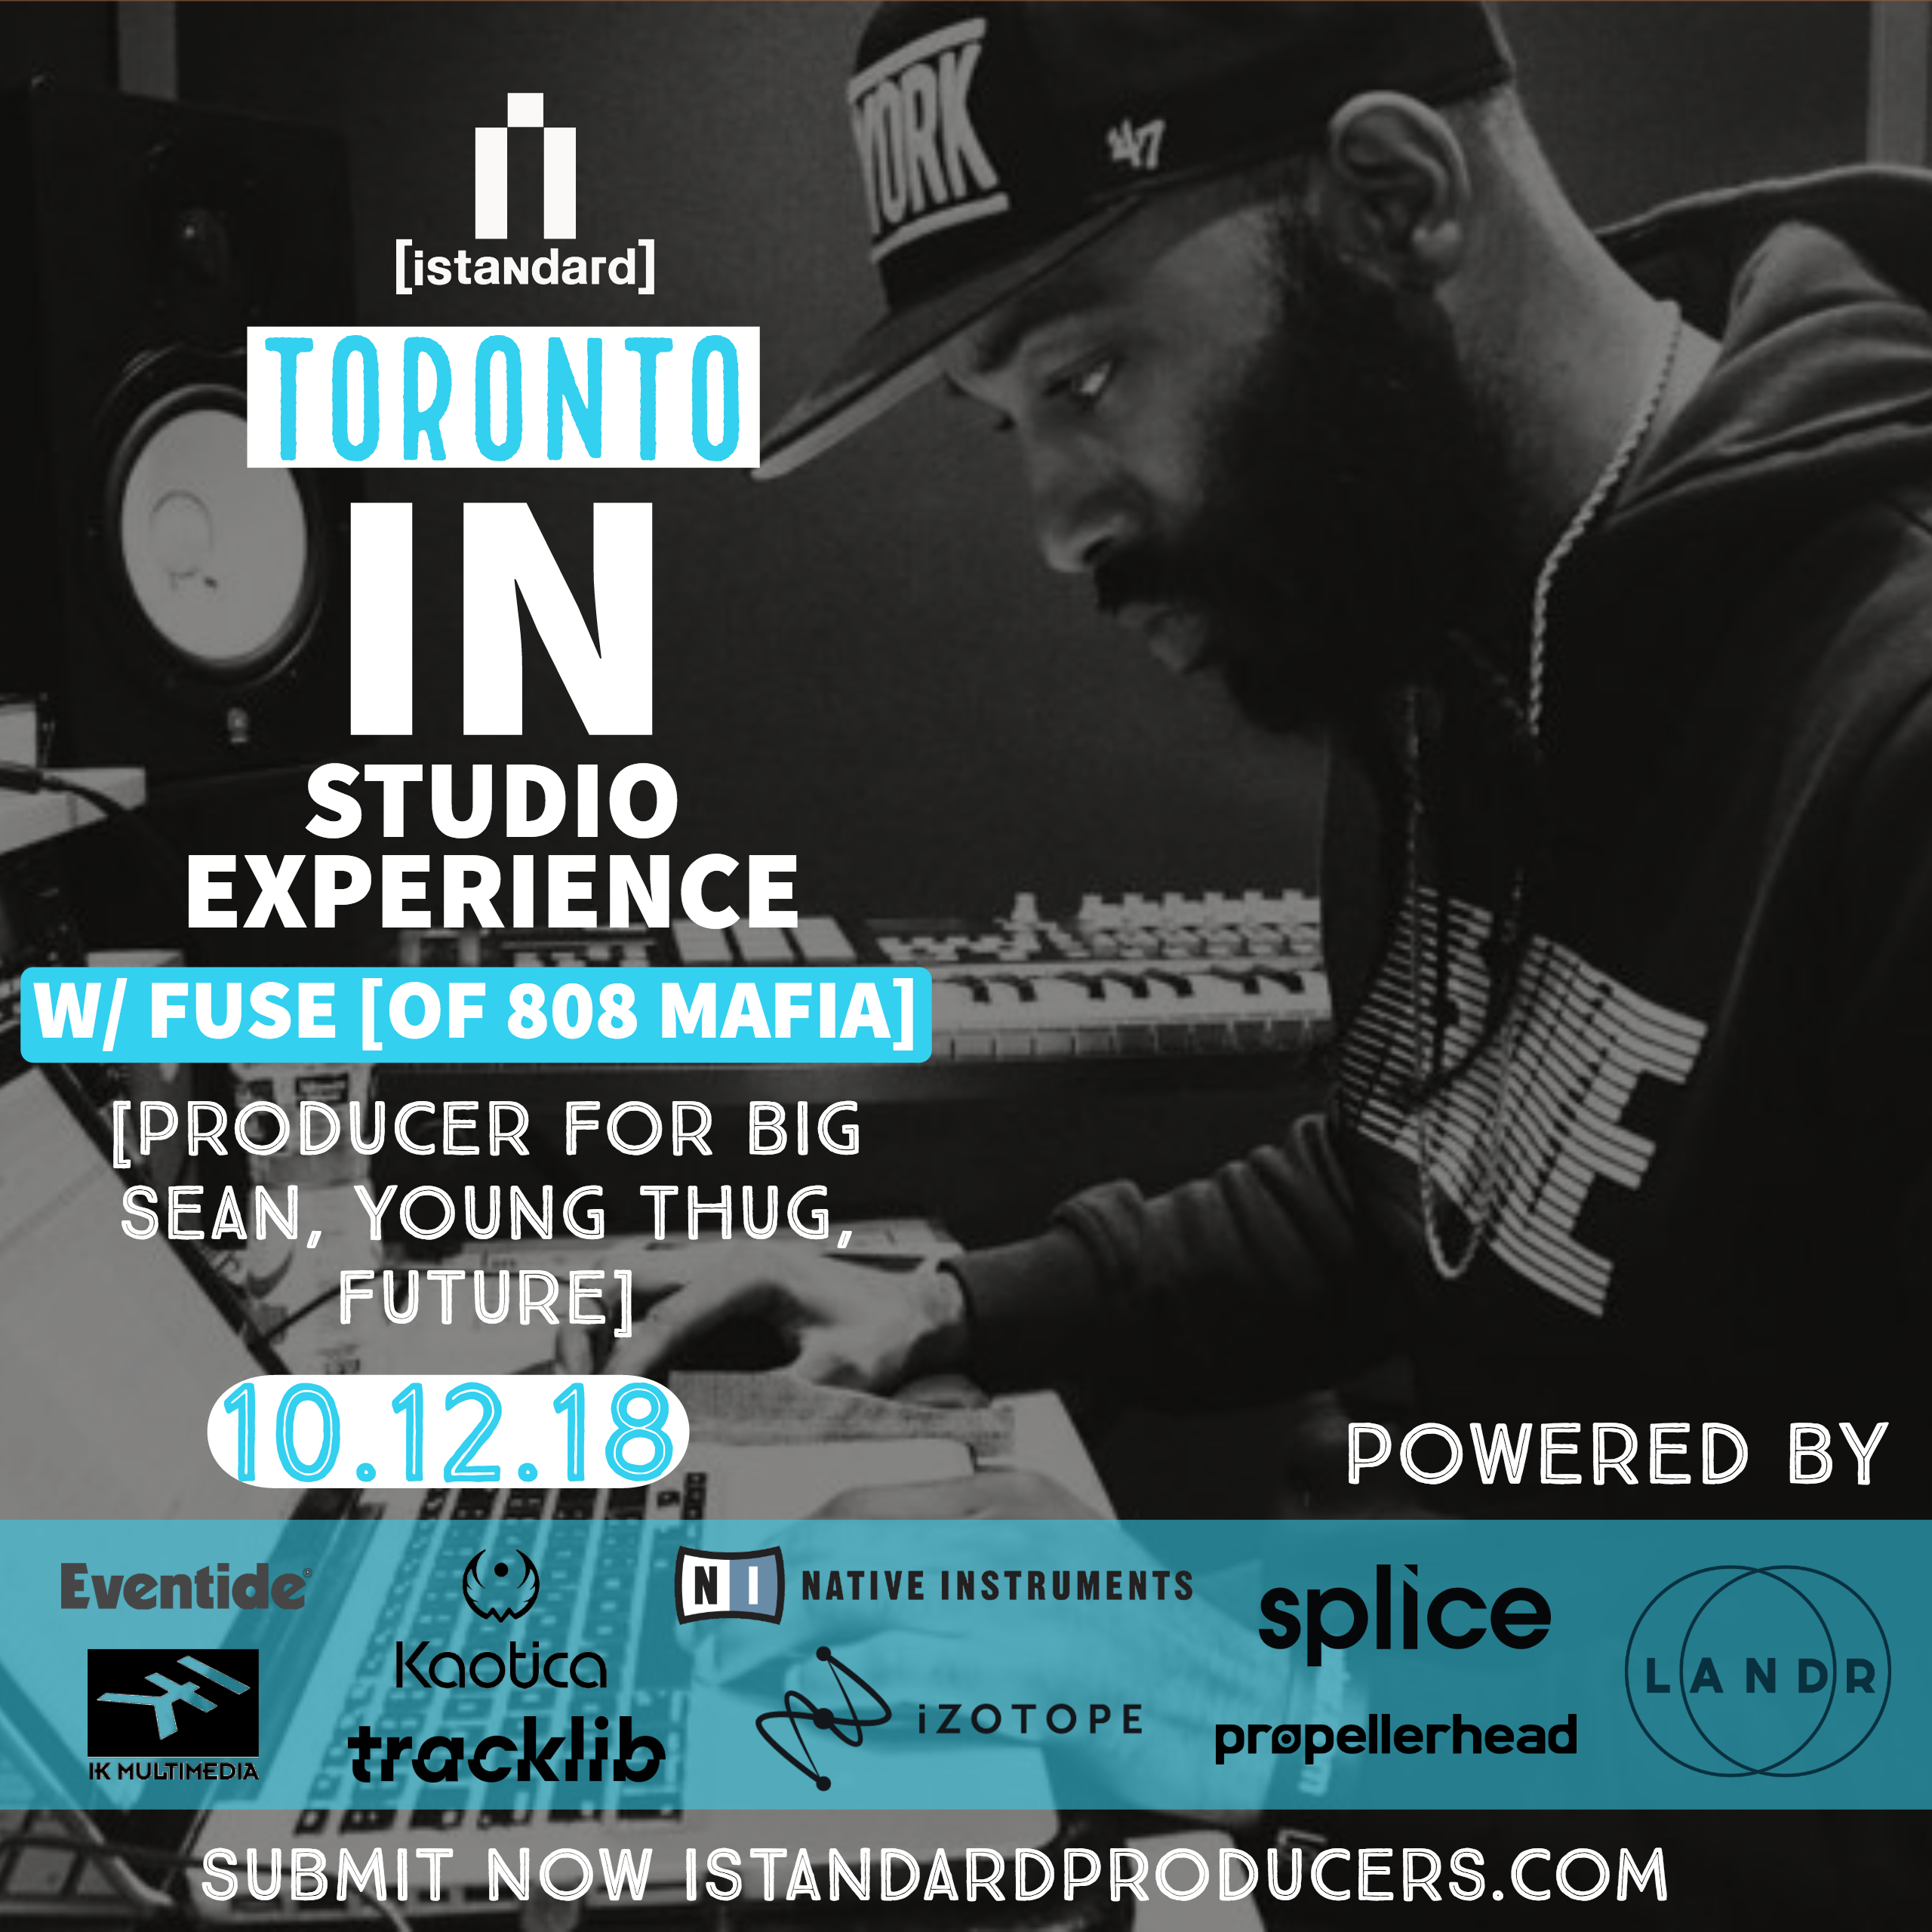 istandard in-studio experience - toronto] - Events - Universe